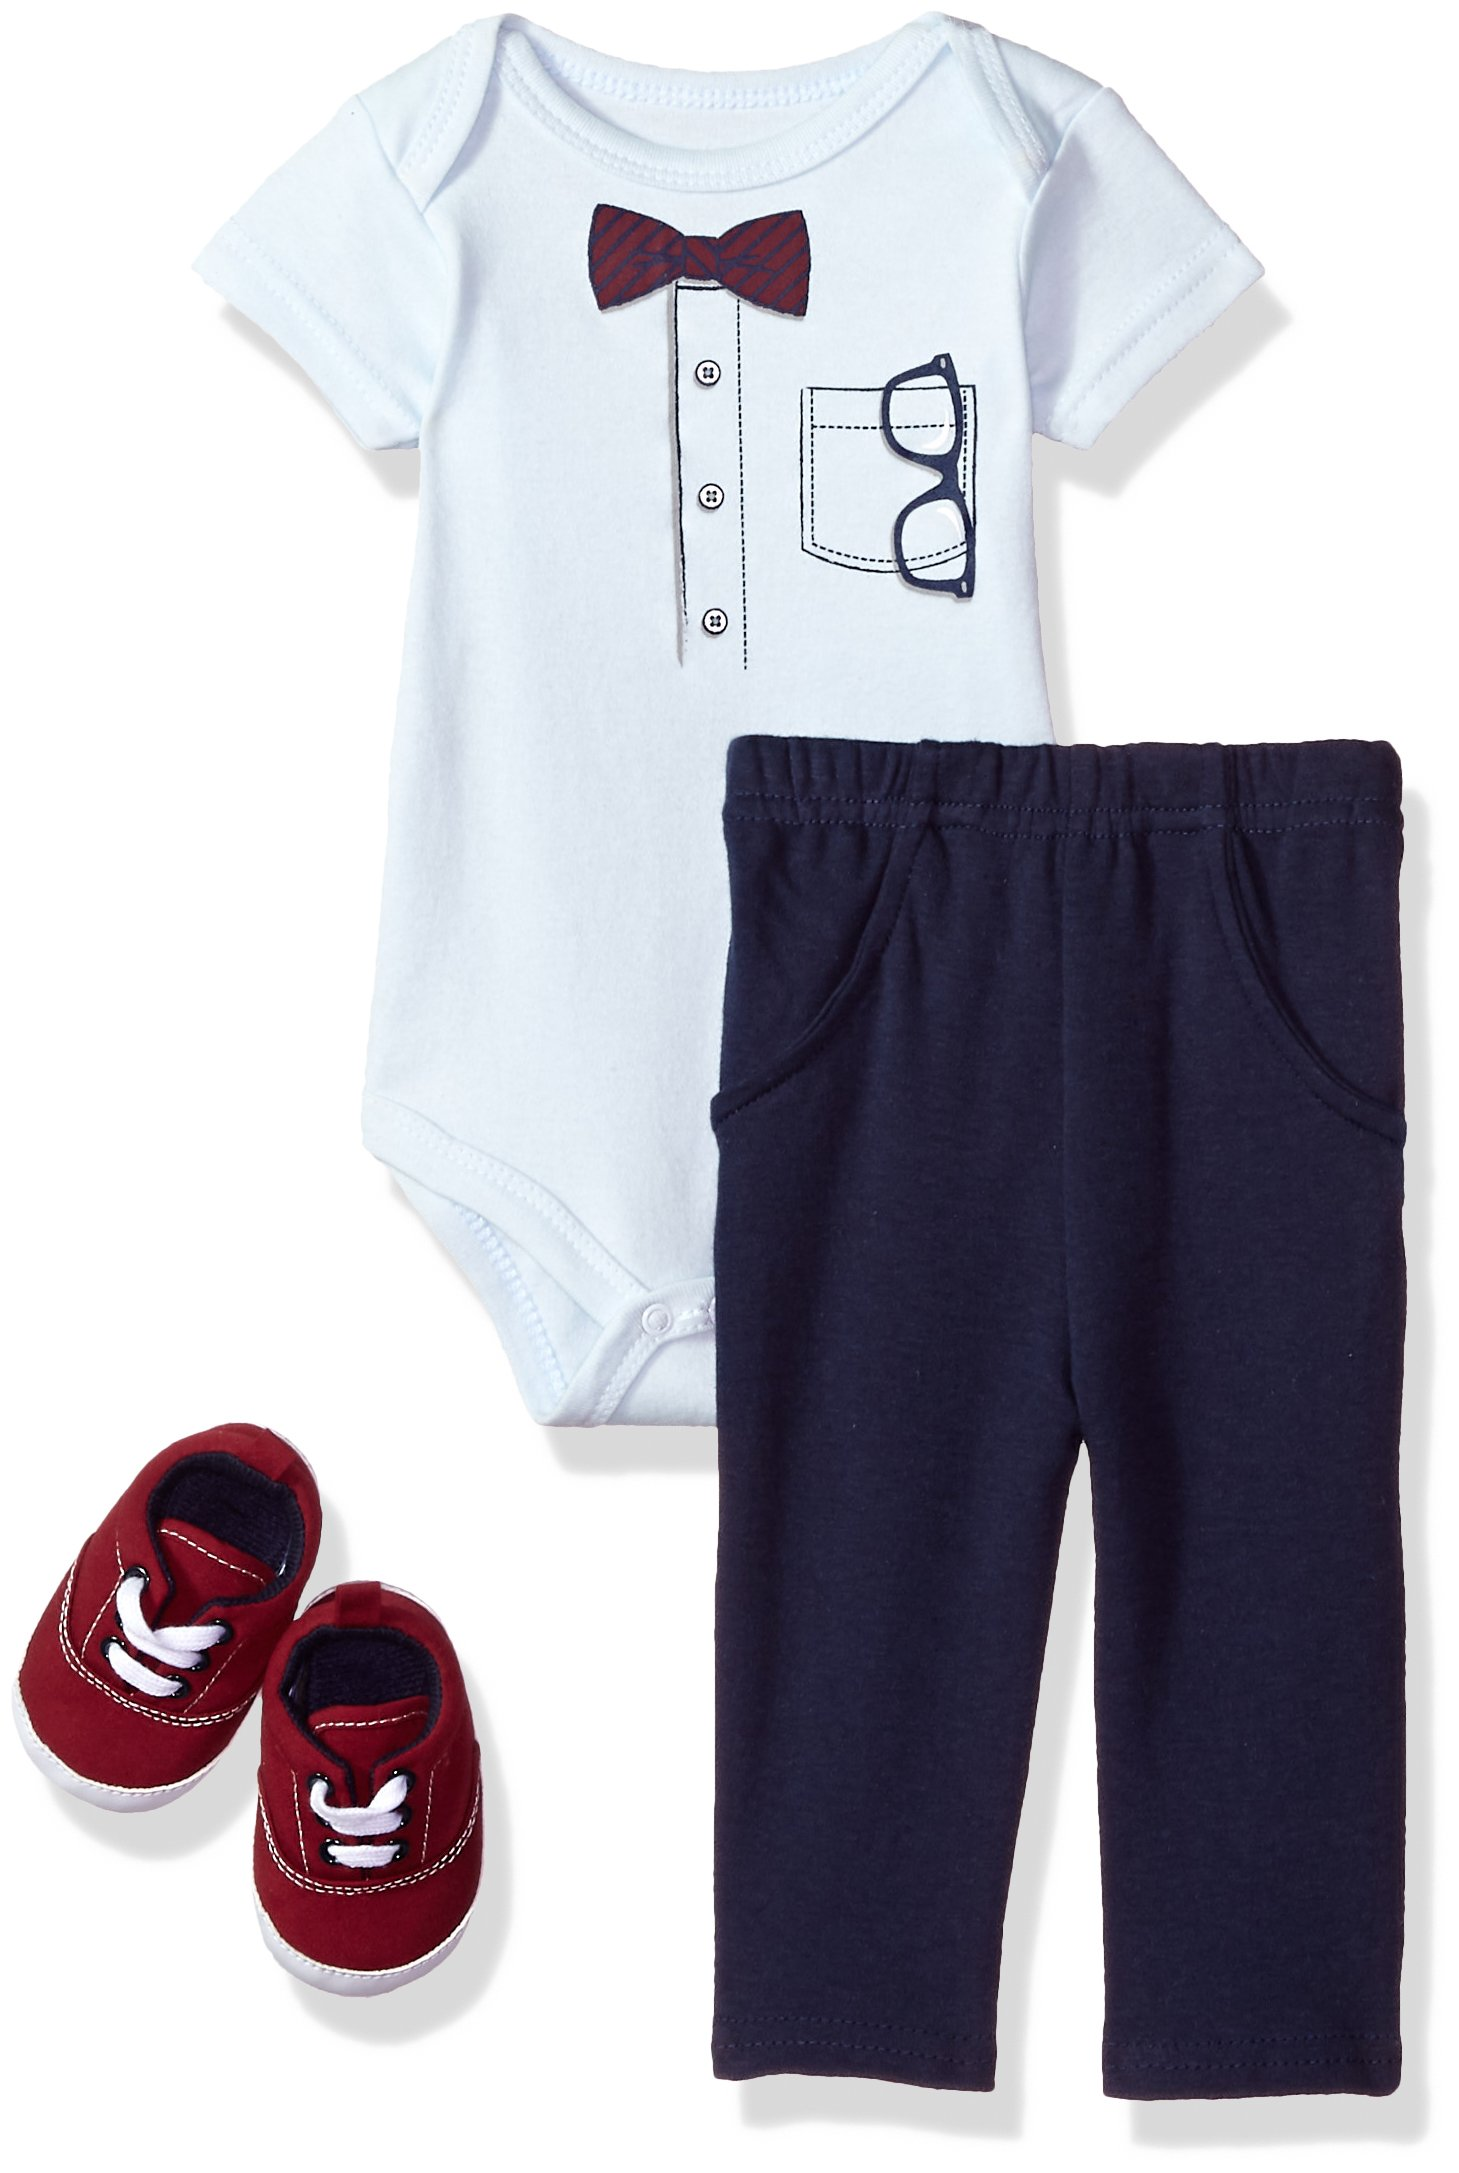 Little Treasure Baby Bodysuit, Pant and Shoe Set, Glasses, 6-9 Months by Little Treasure